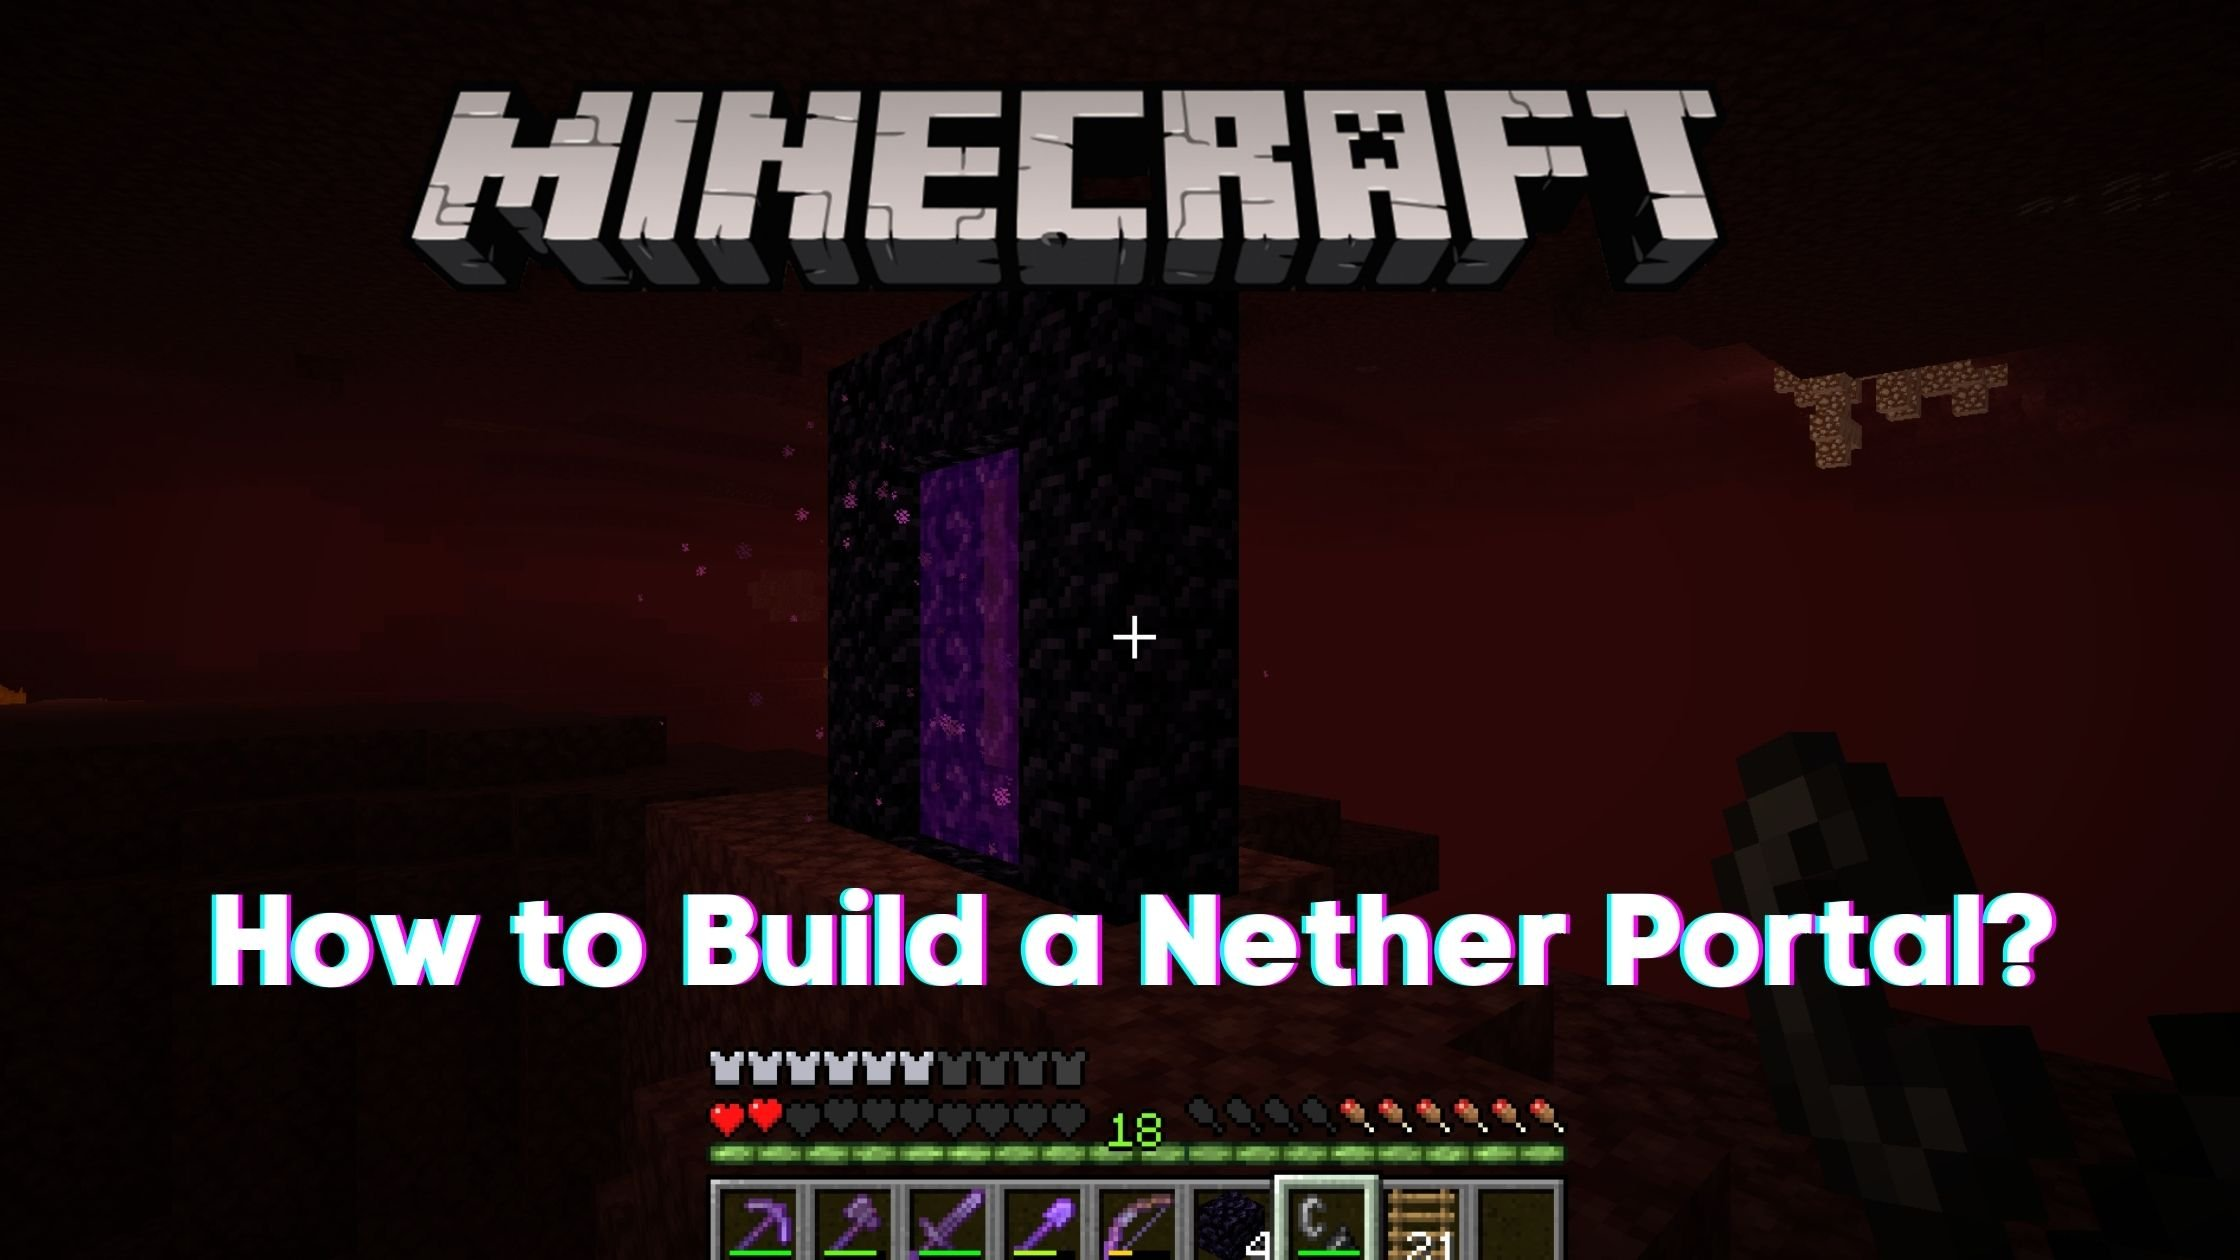 How to Build a Nether Portal in Minecraft?